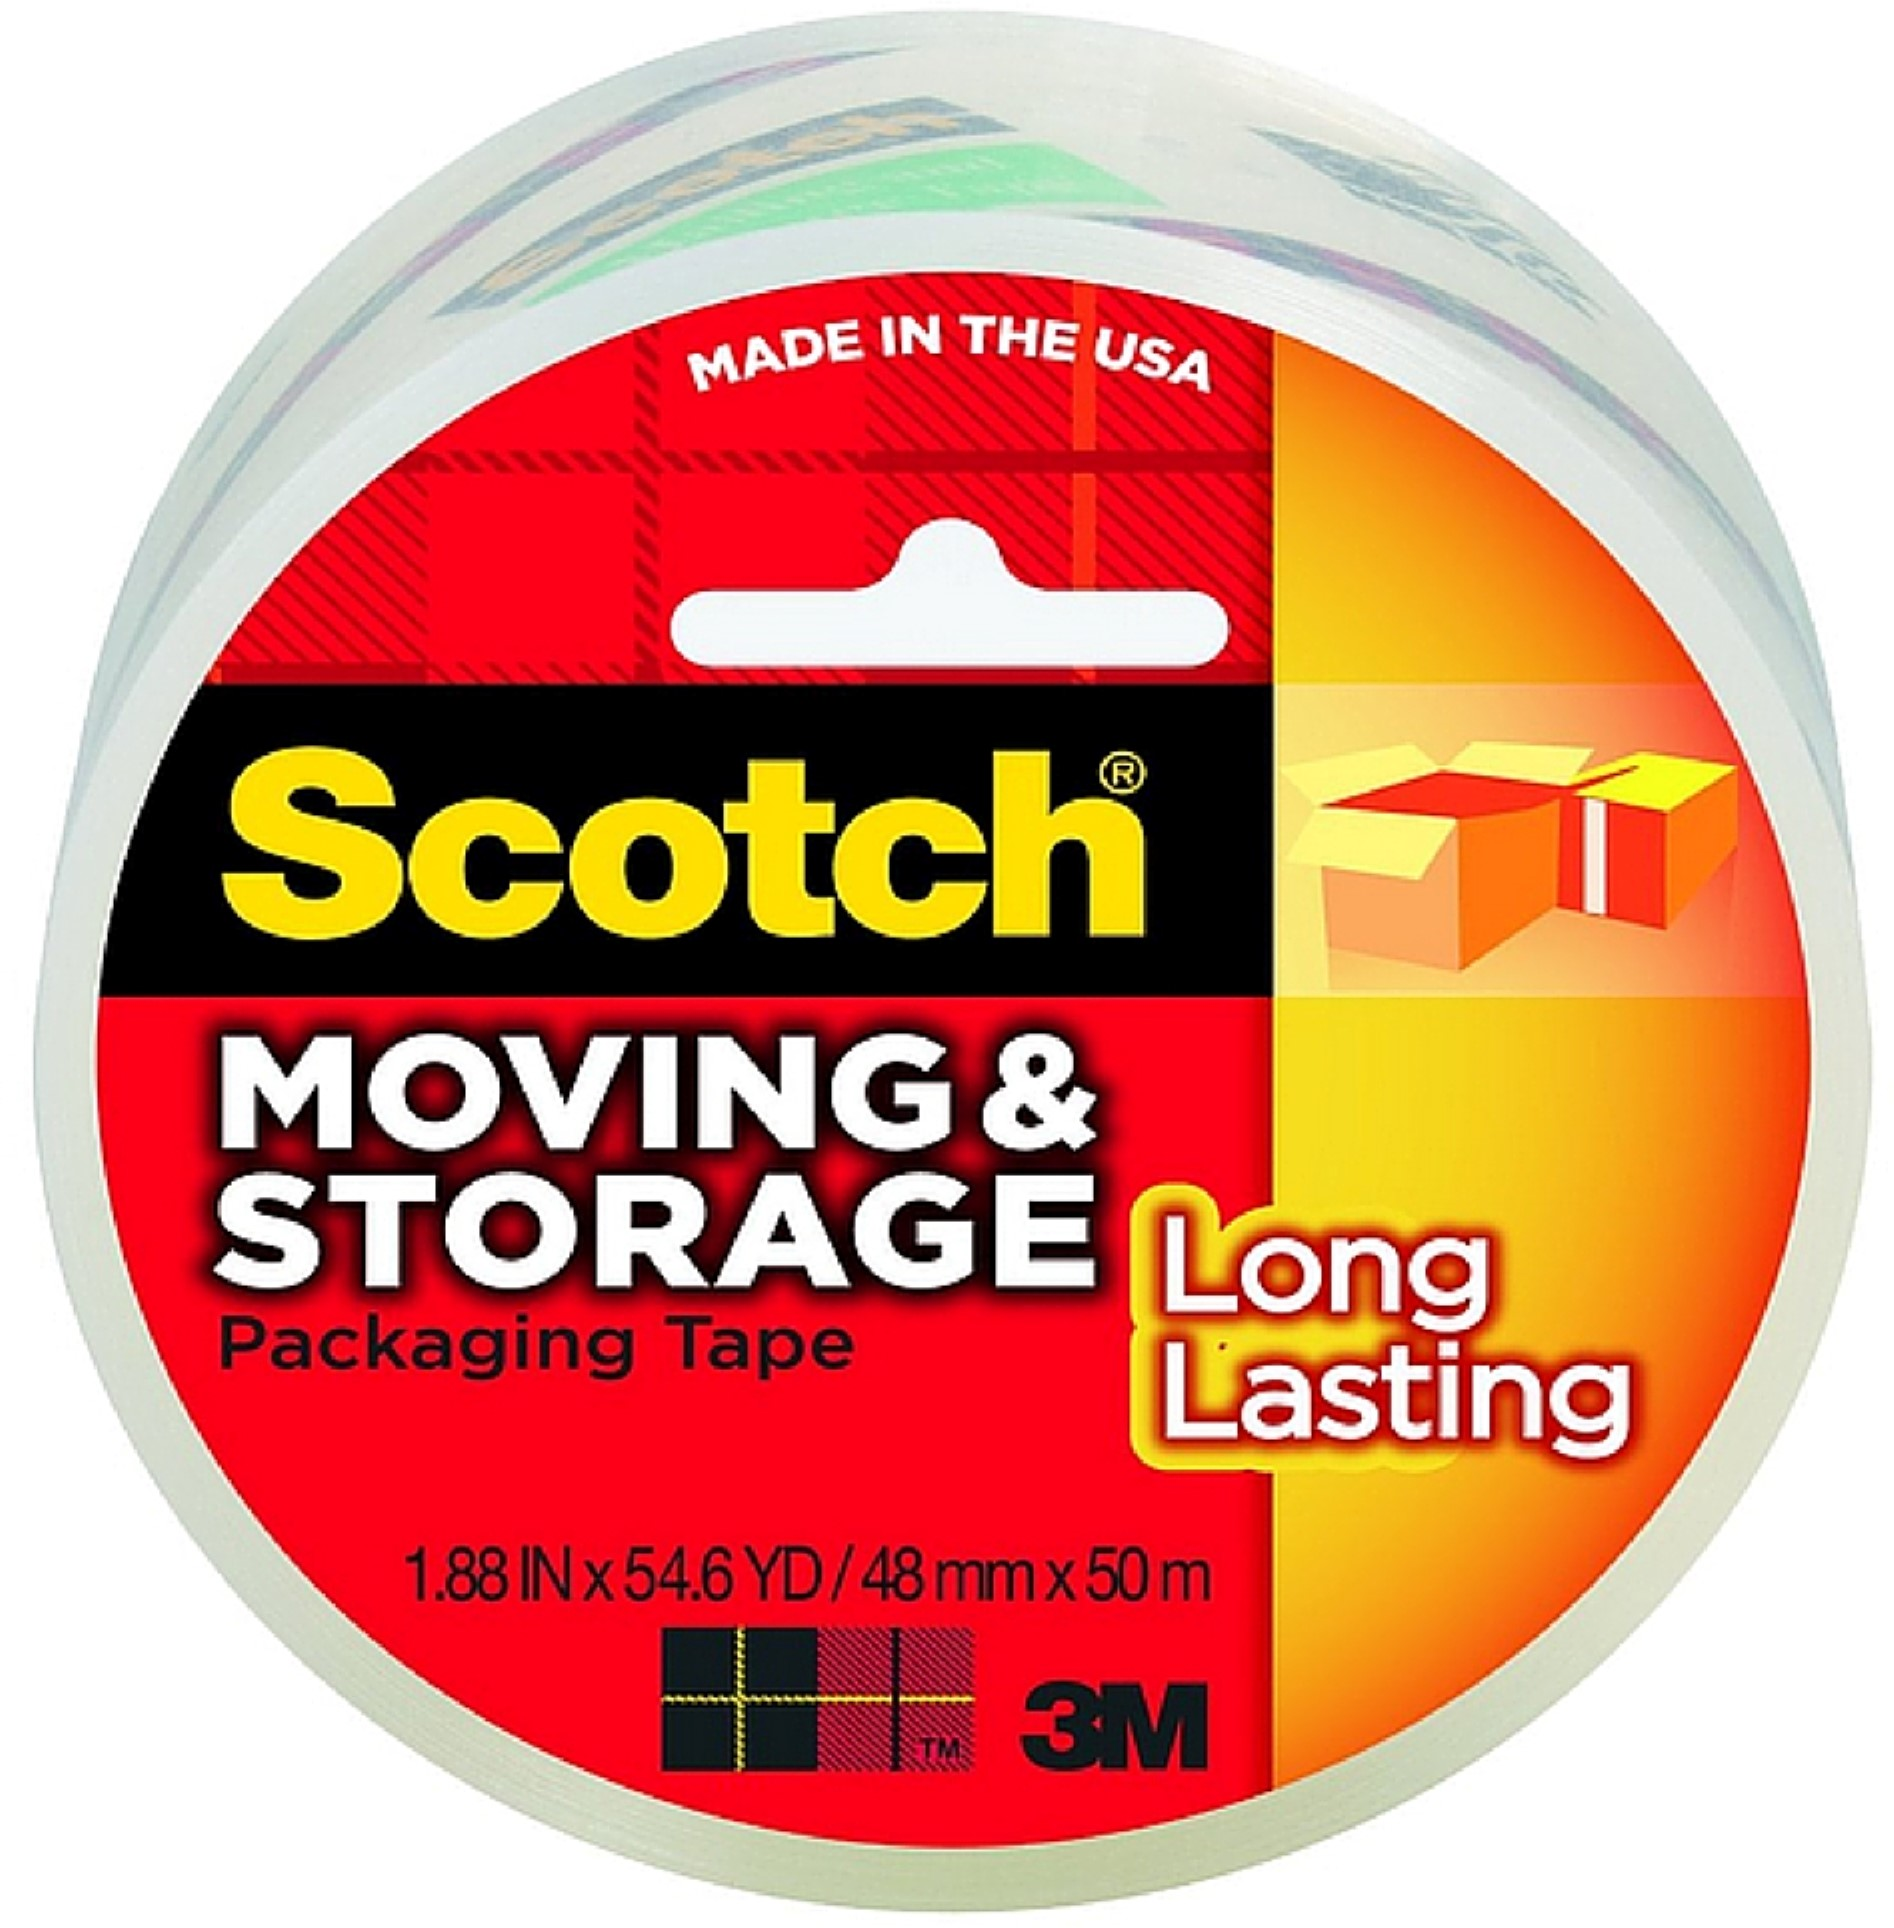 Scotch Moving Storage Long Lasting Packing Tape 1 ea (Pack of 2)